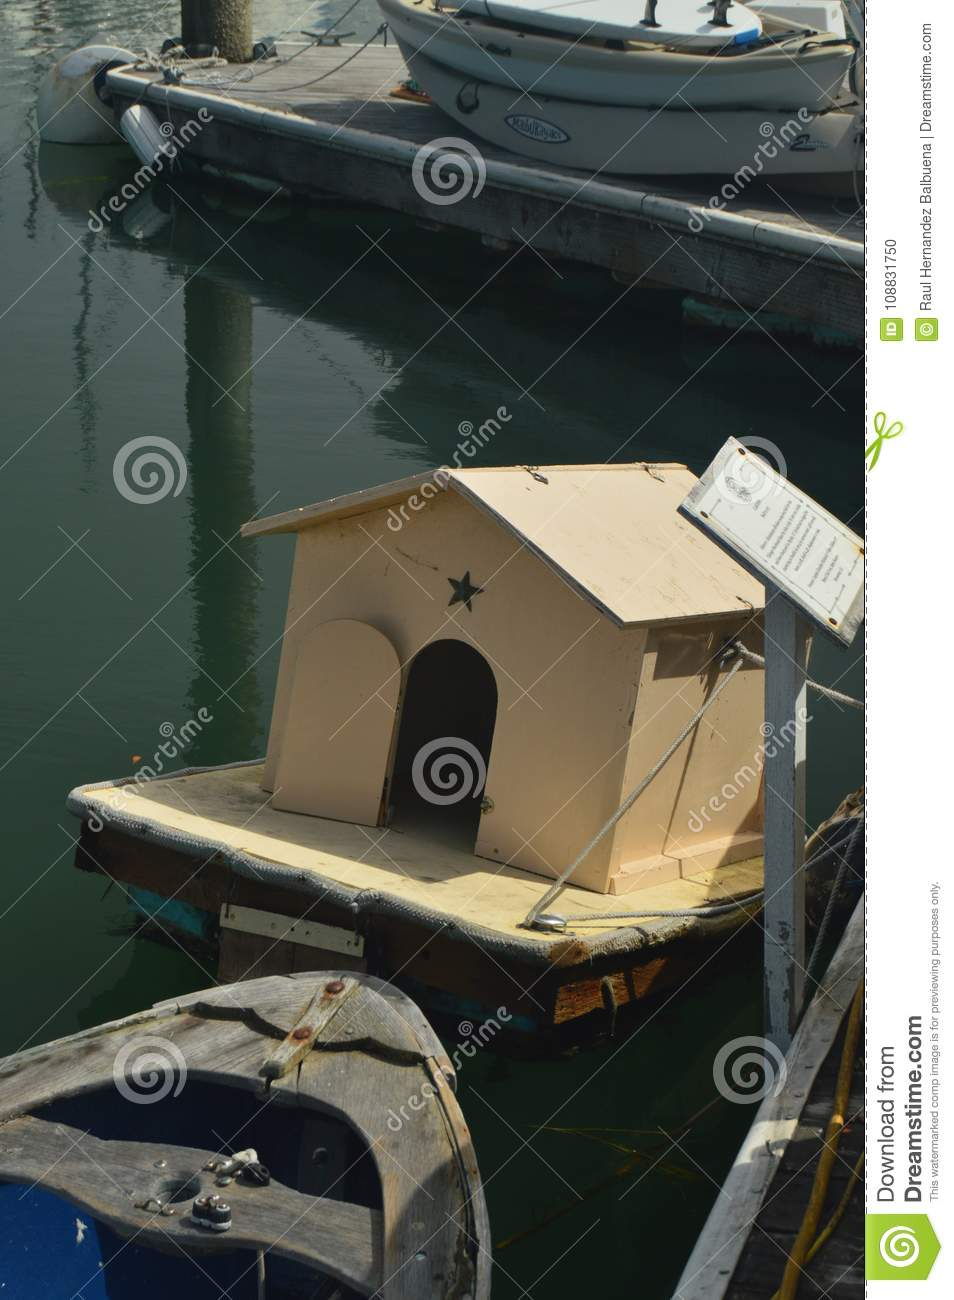 Floating Doghouse In Sausalito Near San Francisco.